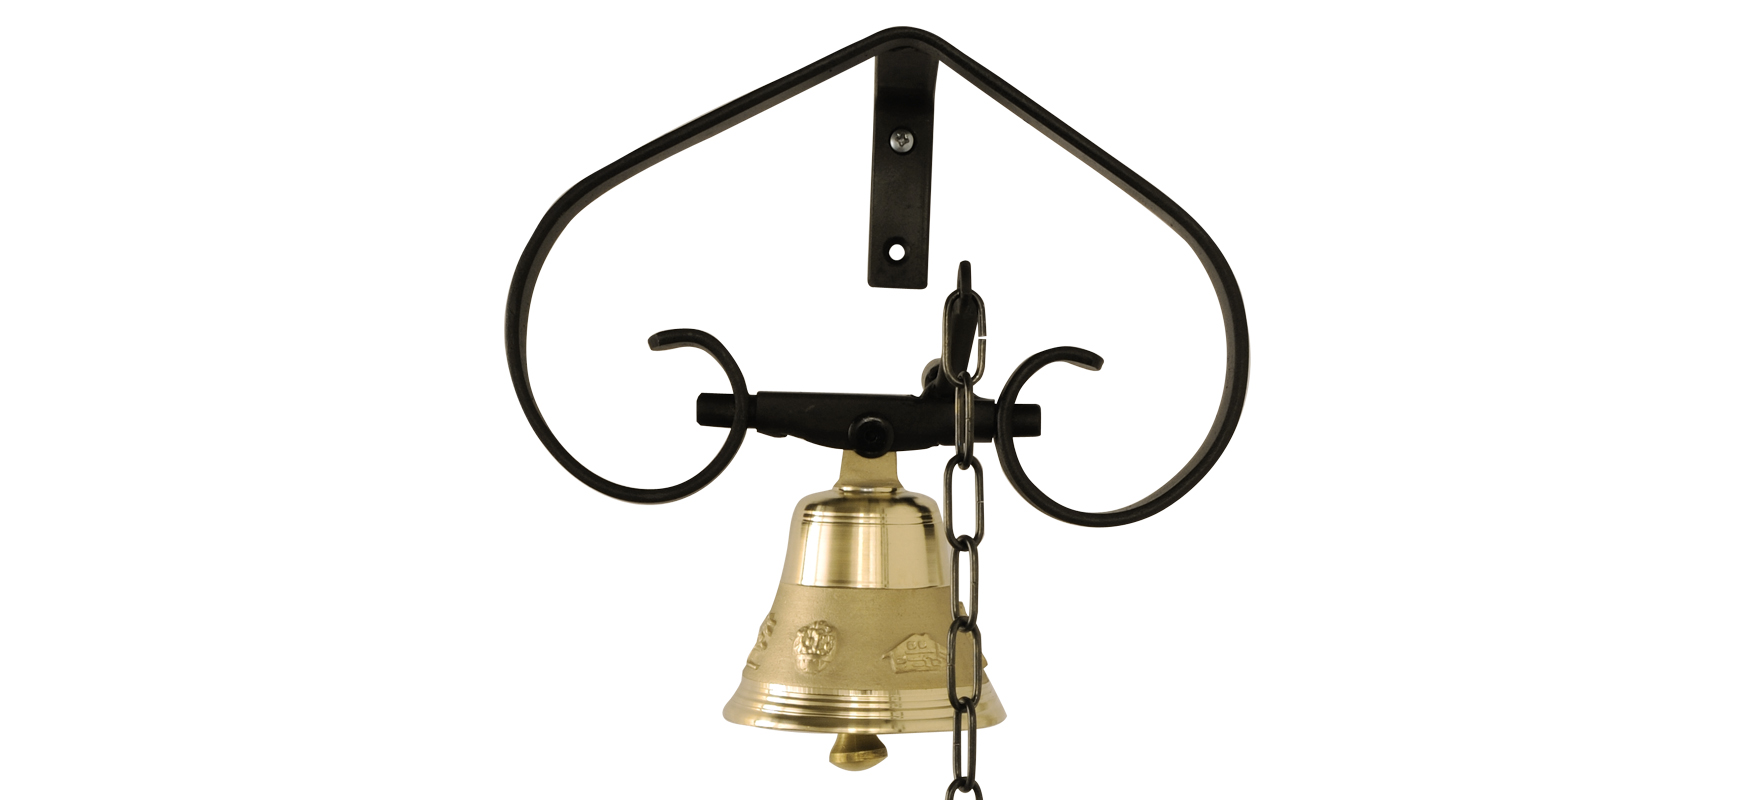 Bell with iron support